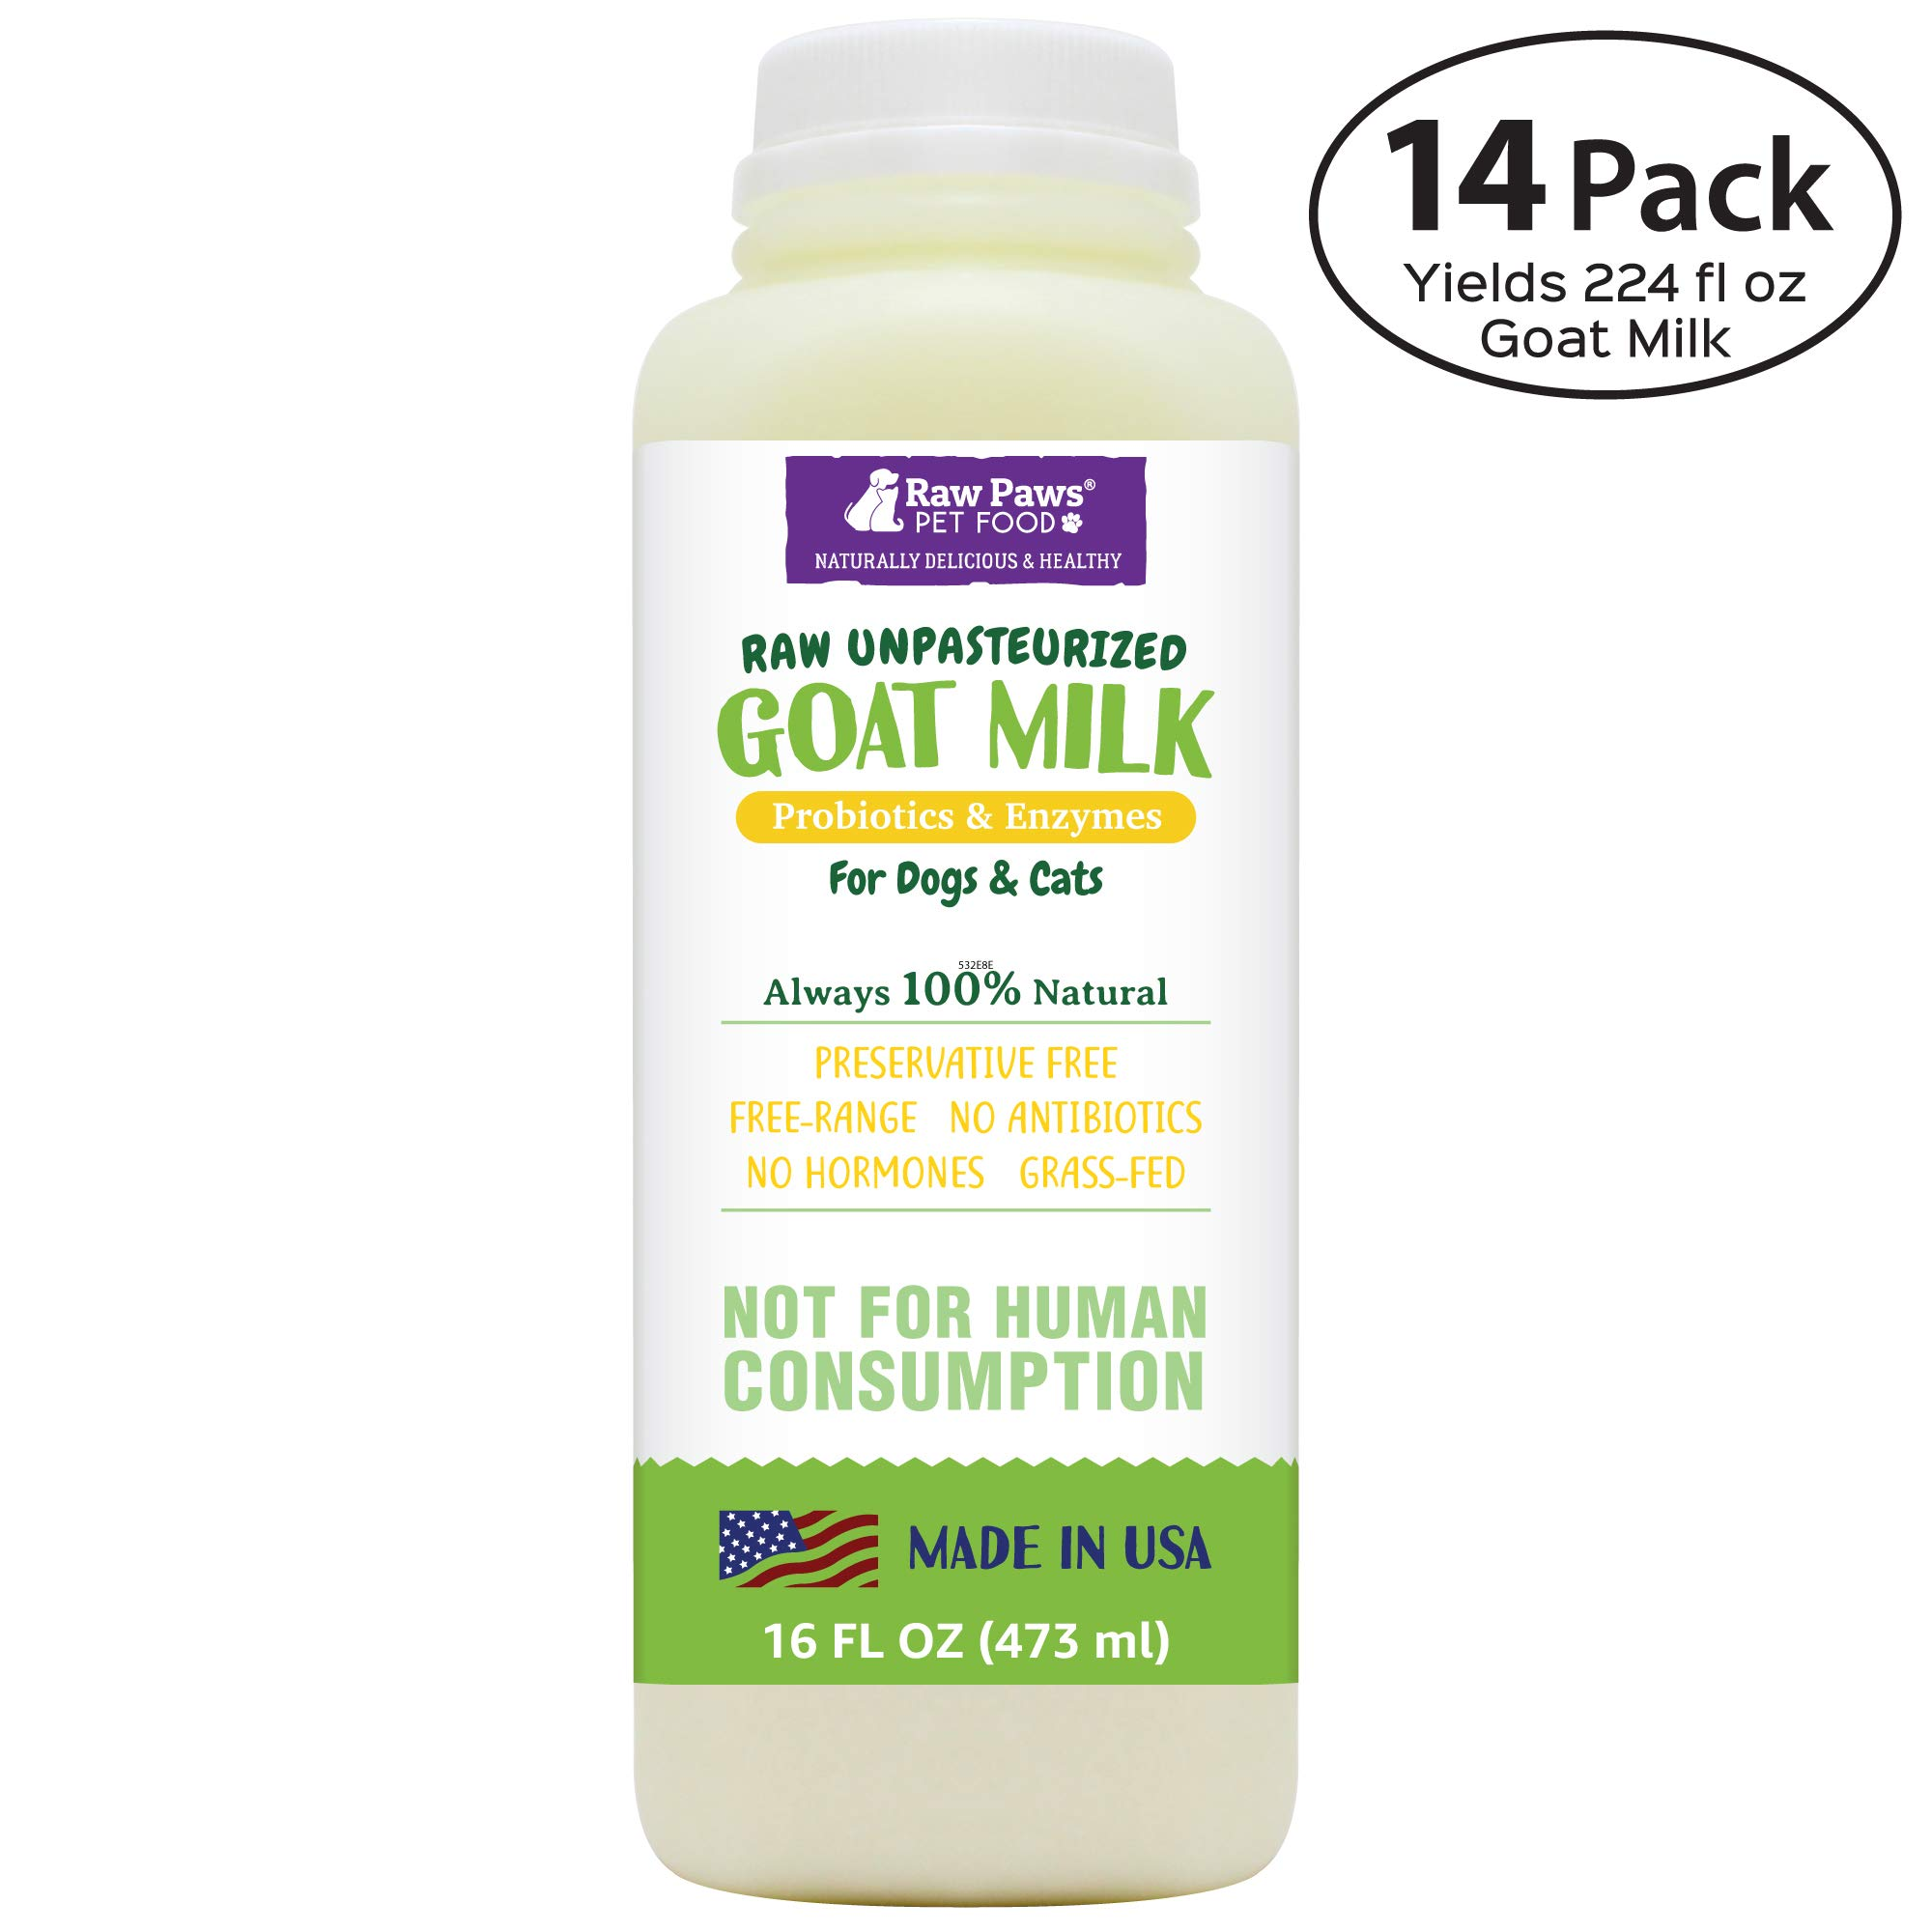 Raw Paws Pet Frozen Raw Goat Milk for Dogs & Cats, 16-oz/14 Pack - Pet Milk Replacer for Puppies & Kittens - Goats Milk Supplement for Dogs - Sensitive Stomach Dog Food Topper, Bland Dog Food Enhancer